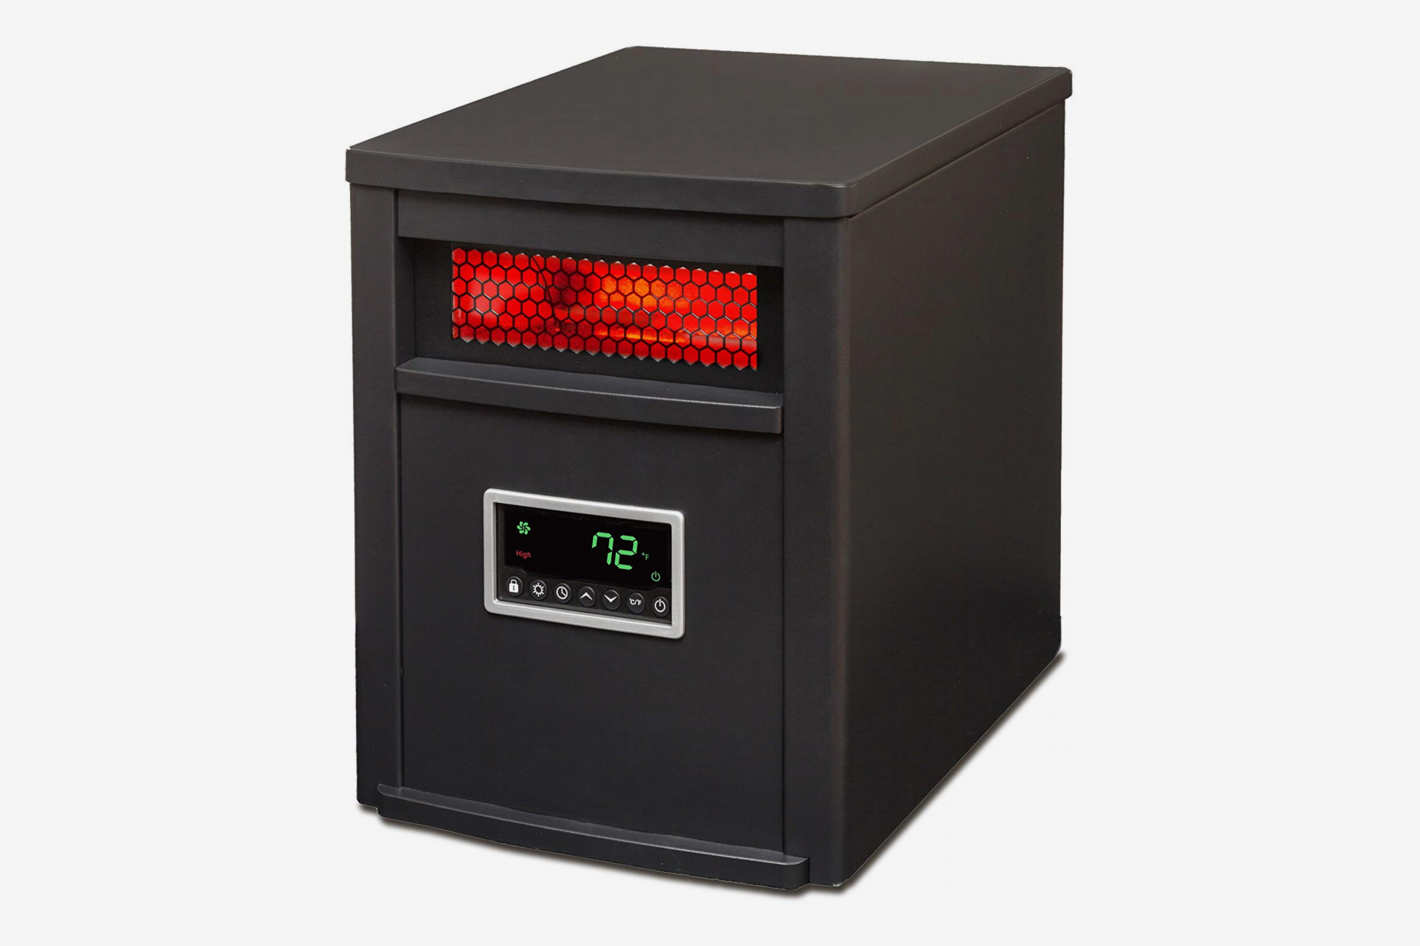 LifeSmart Large Room Infrared Heater